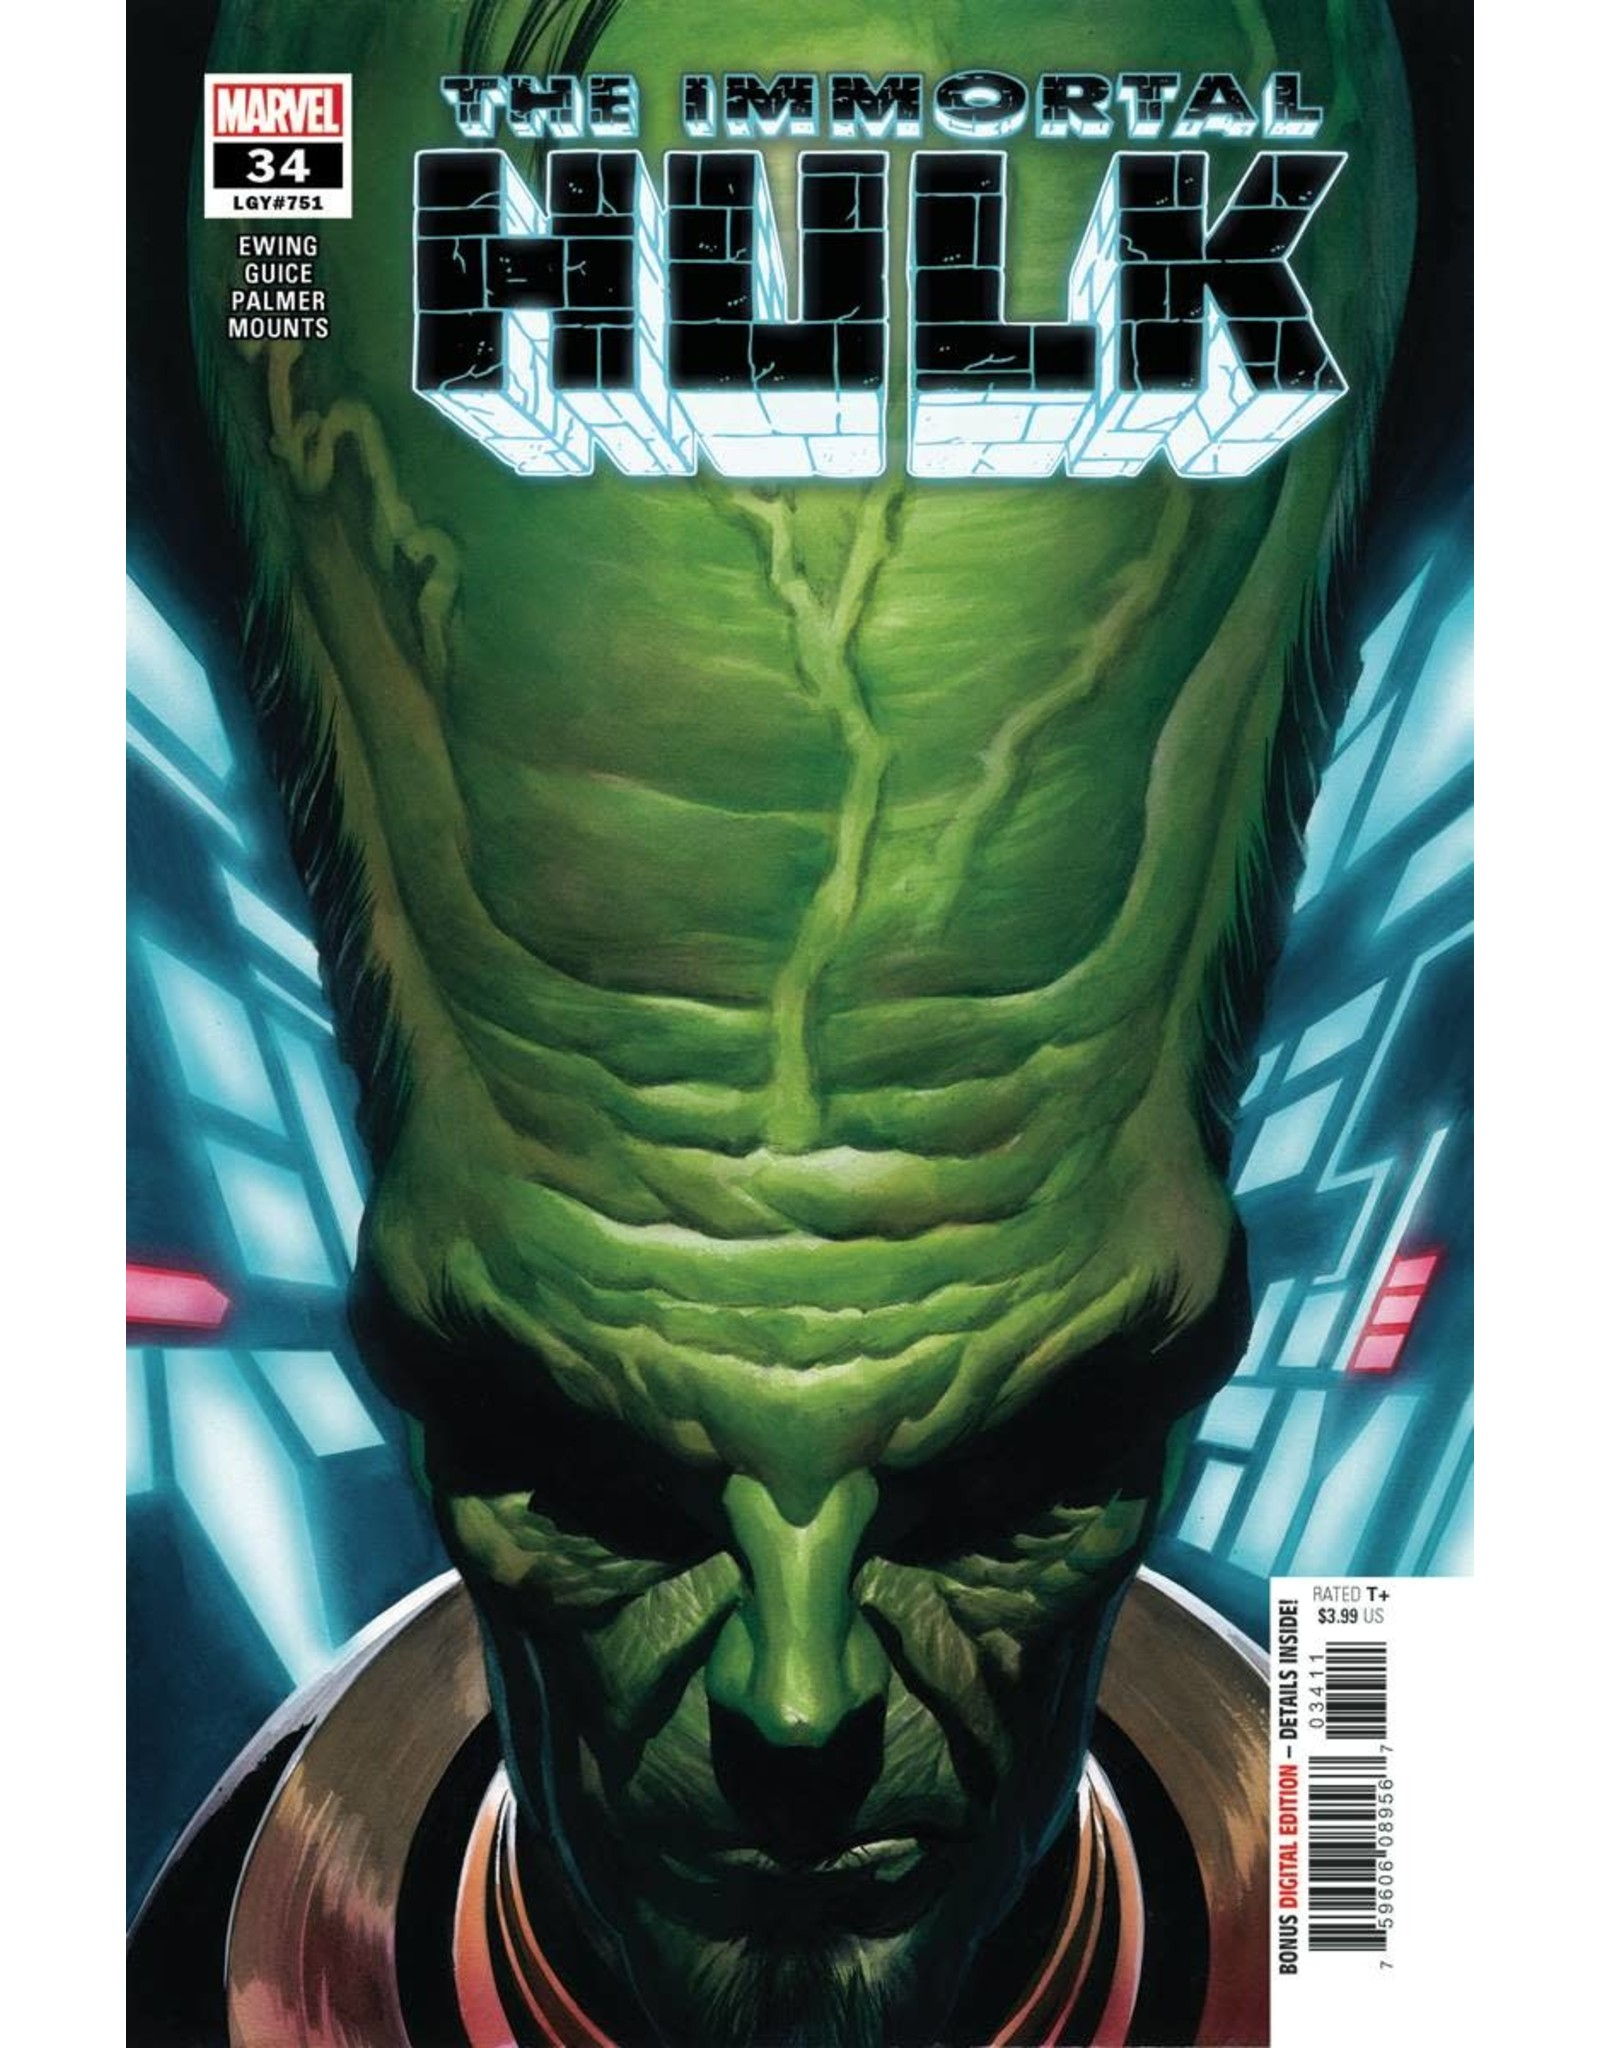 MARVEL COMICS IMMORTAL HULK #34